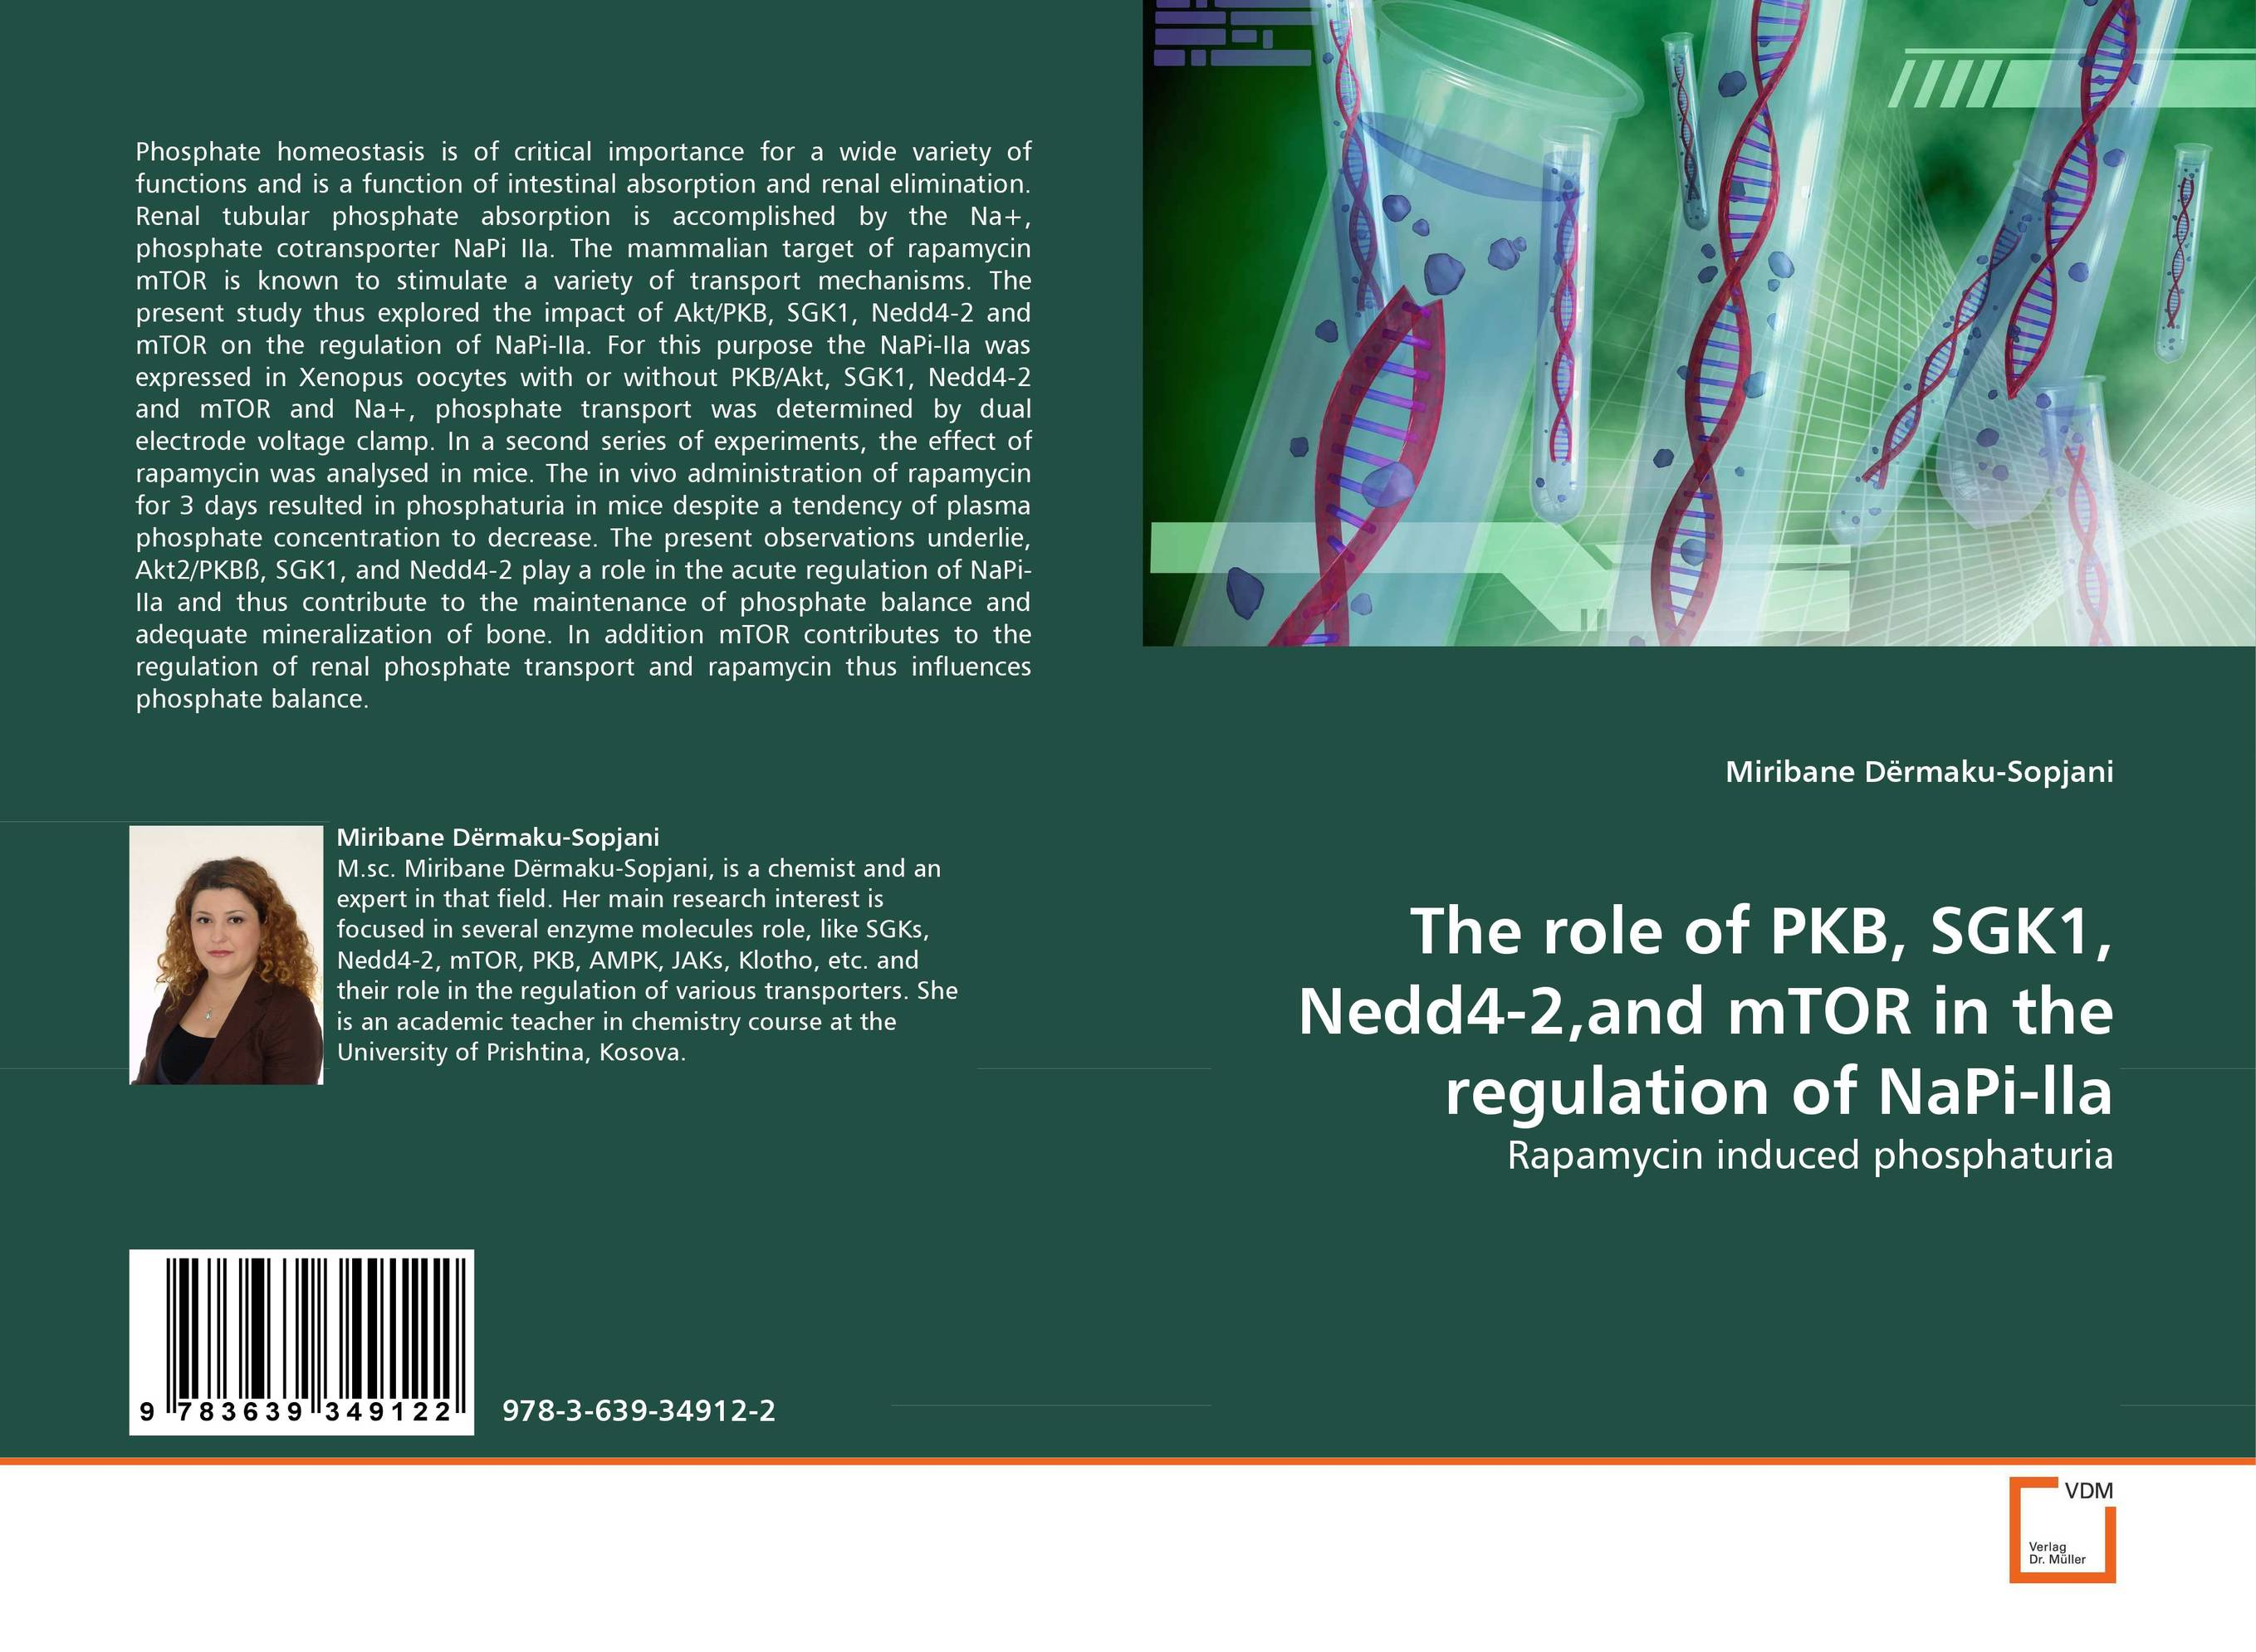 The role of PKB, SGK1, Nedd4-2,and mTOR in the regulation of NaPi-lla risk regulation and administrative constitutionalism